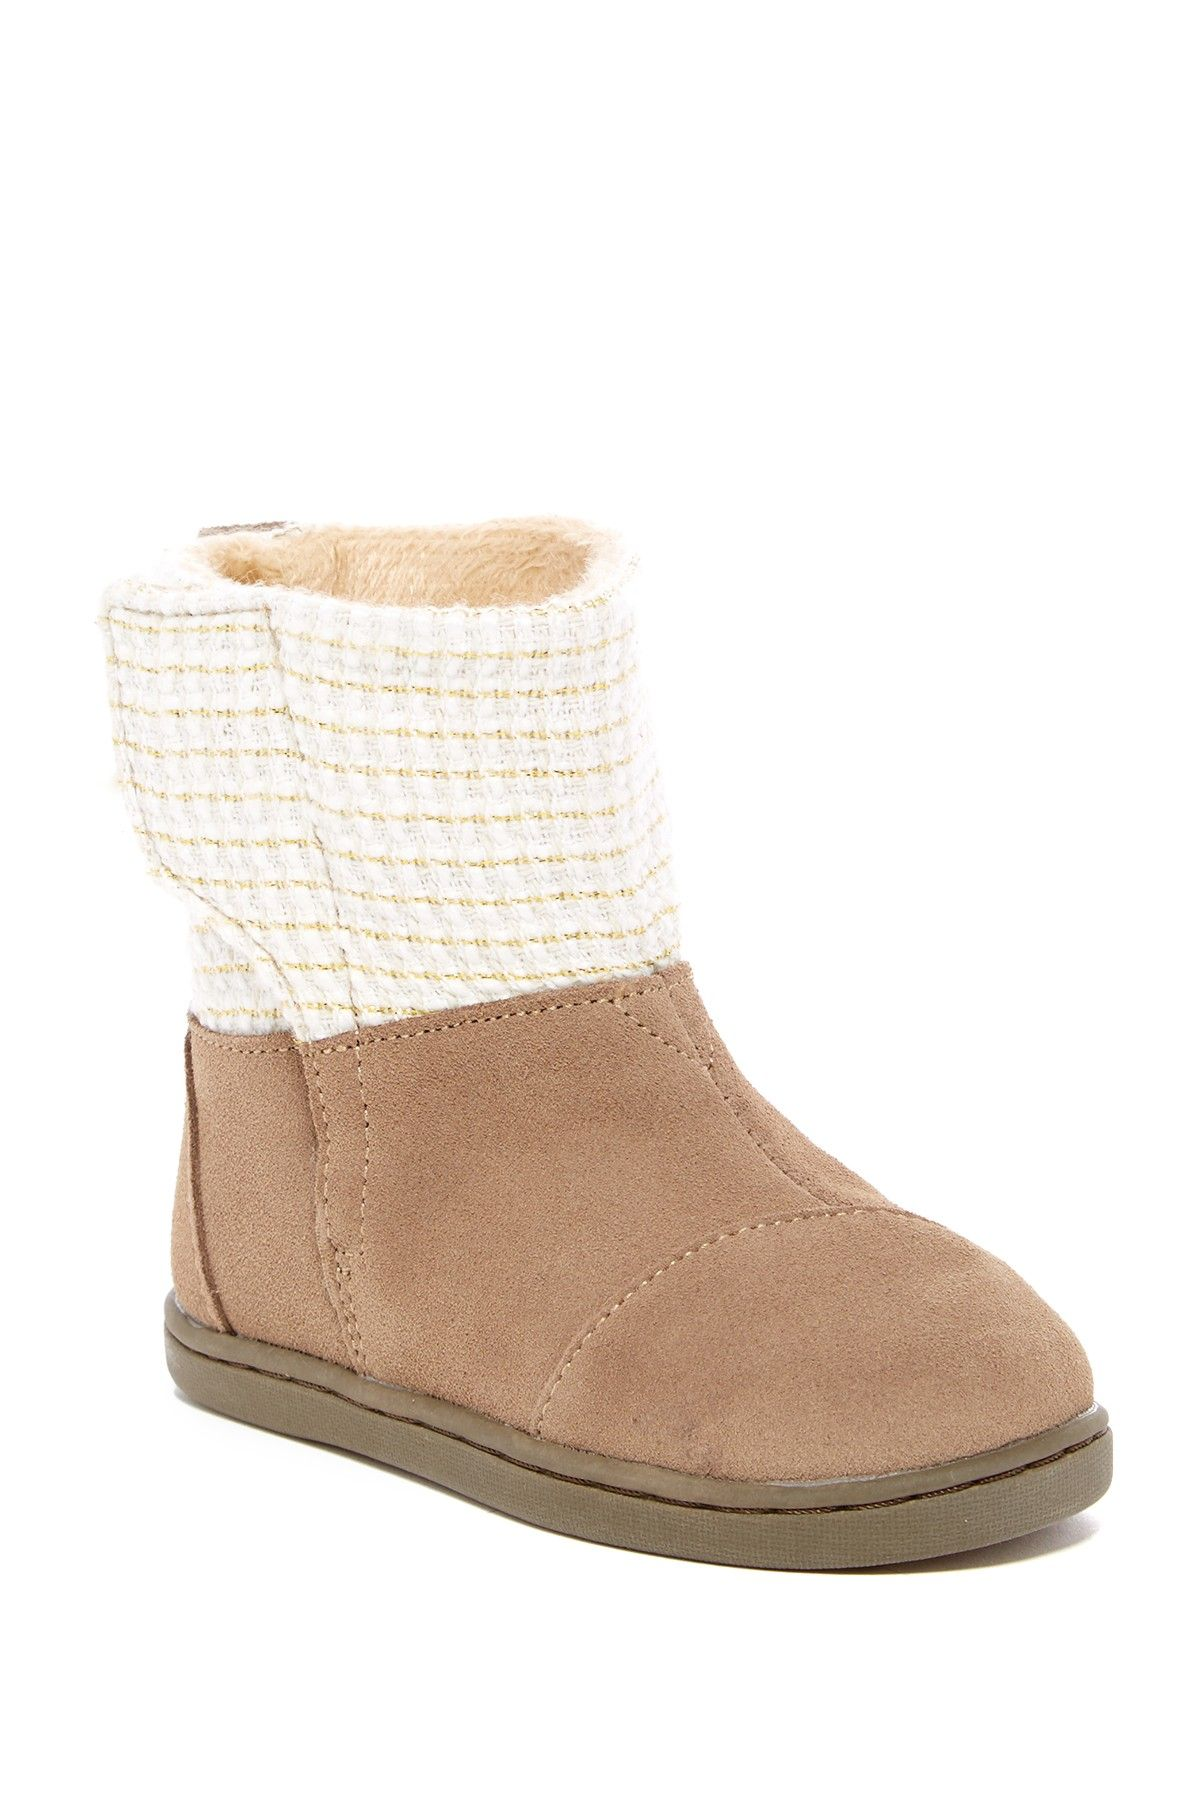 ac9a23b5657 Suede Metallic Faux Fur Lined Nepal Boot (Baby, Toddler, & Little ...